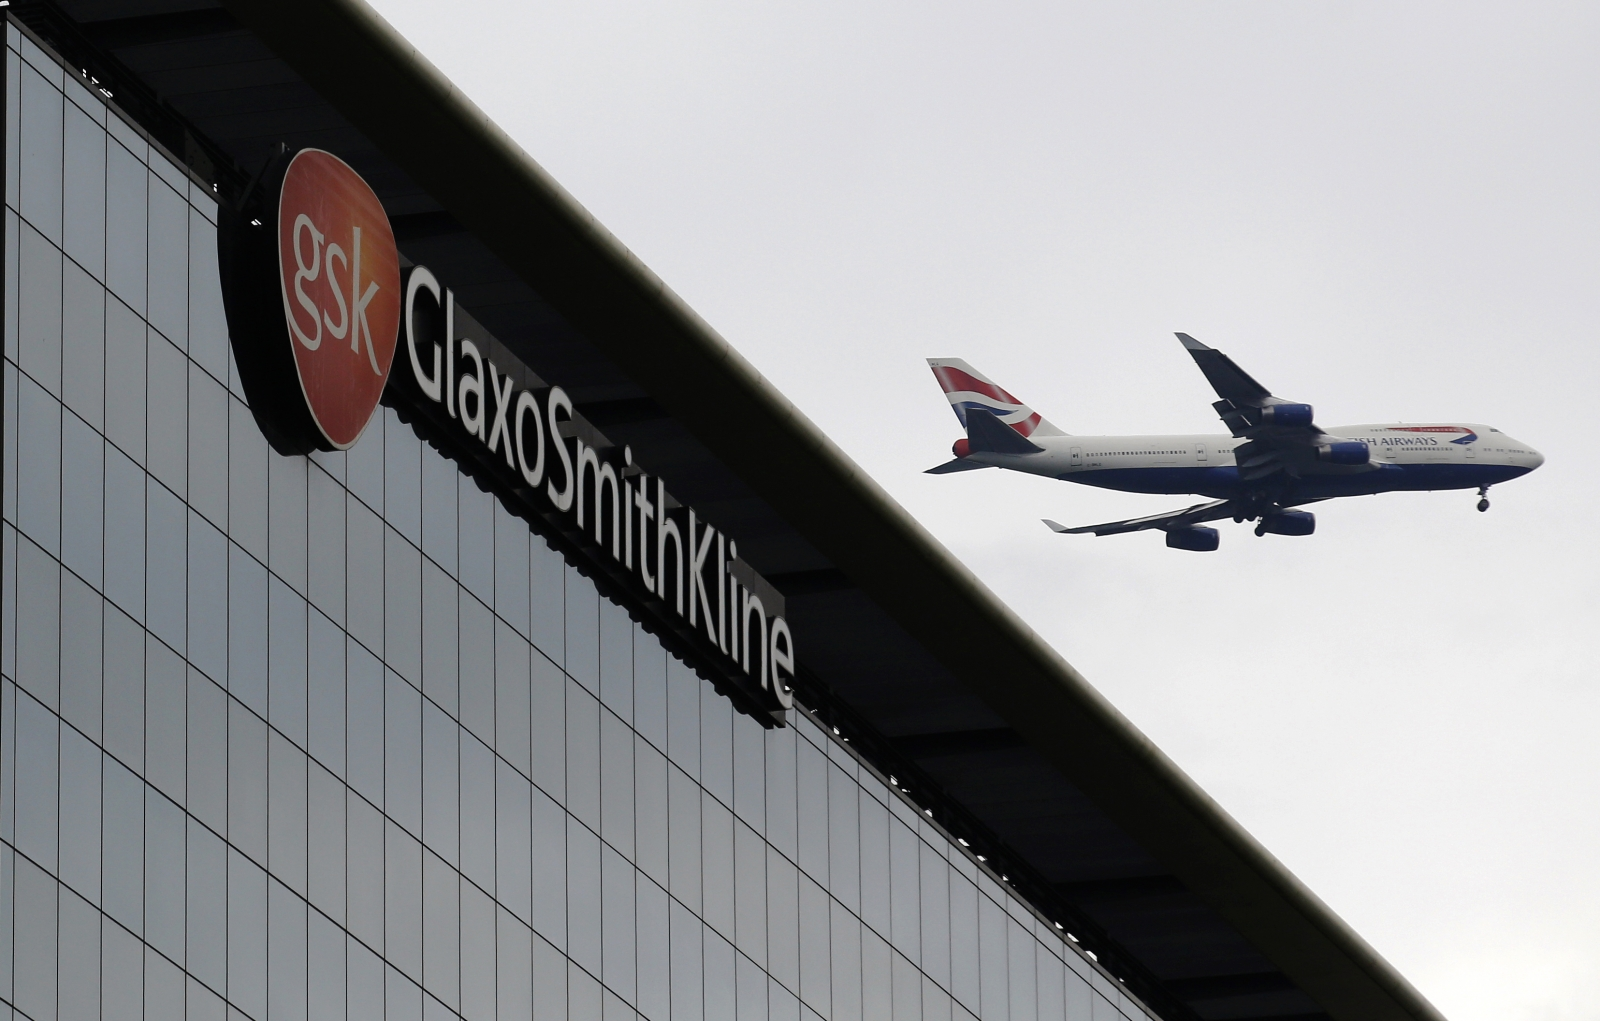 A British Airways airplane flies past a signage for pharmaceutical giant GlaxoSmithKline (GSK) in London